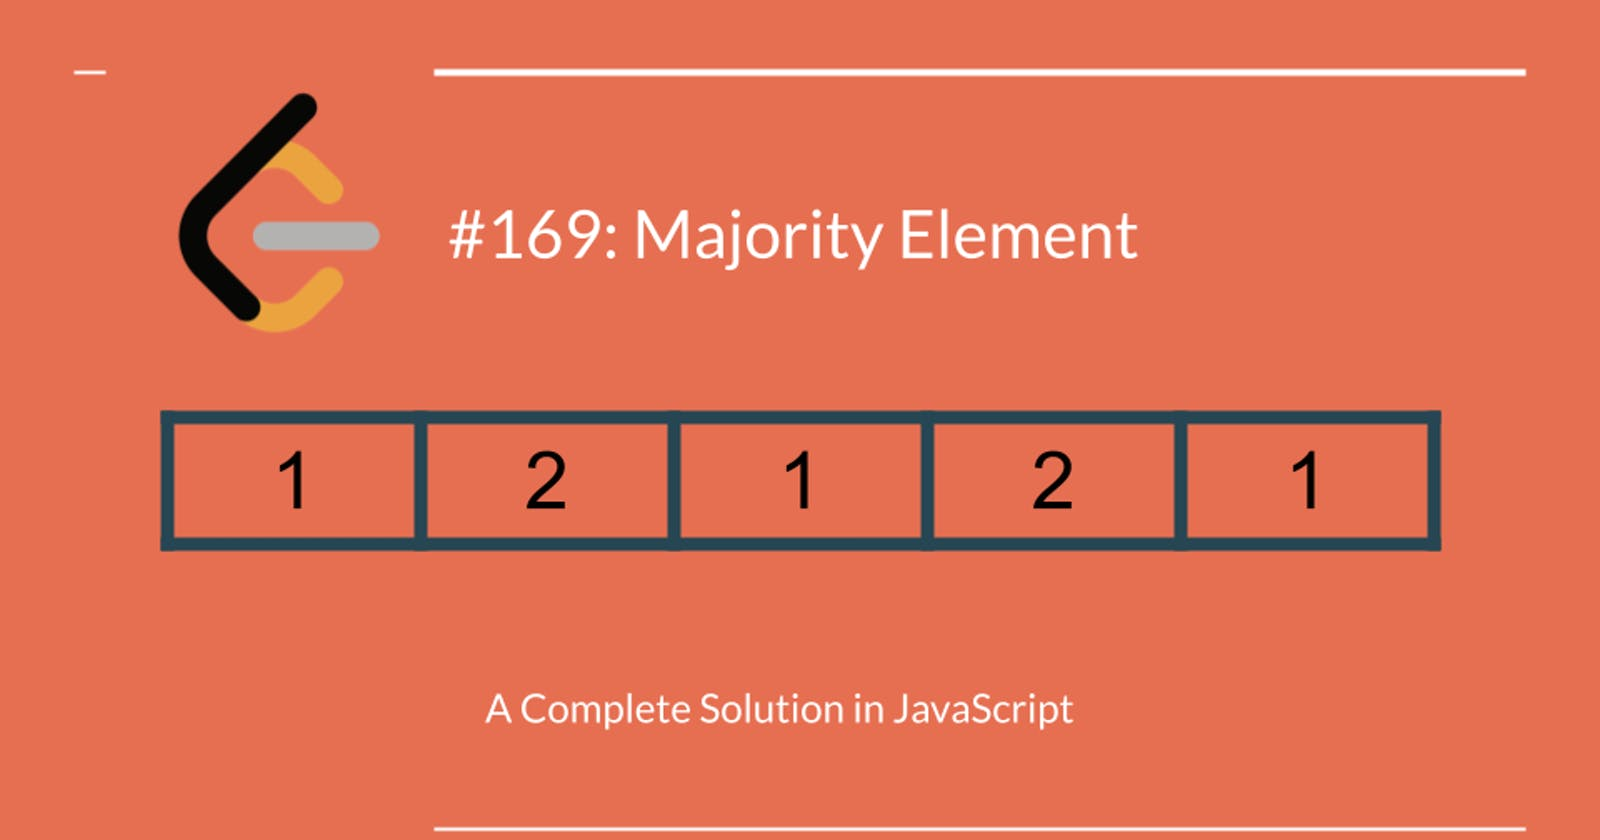 Find the Majority Element